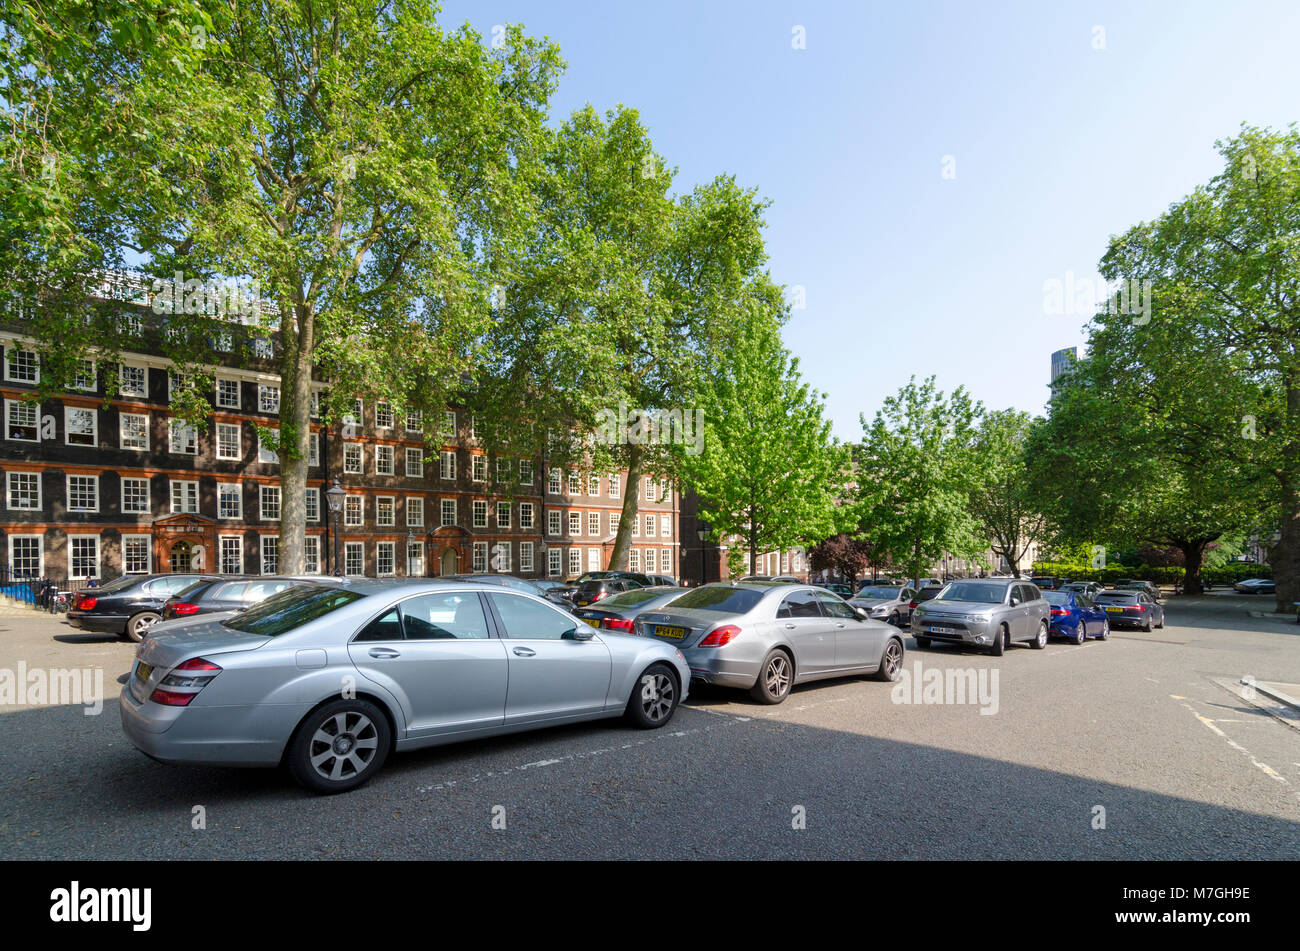 Parked cars infront of buildings on King's Bench Walk, Inner Temple, City of London, UK - Stock Image